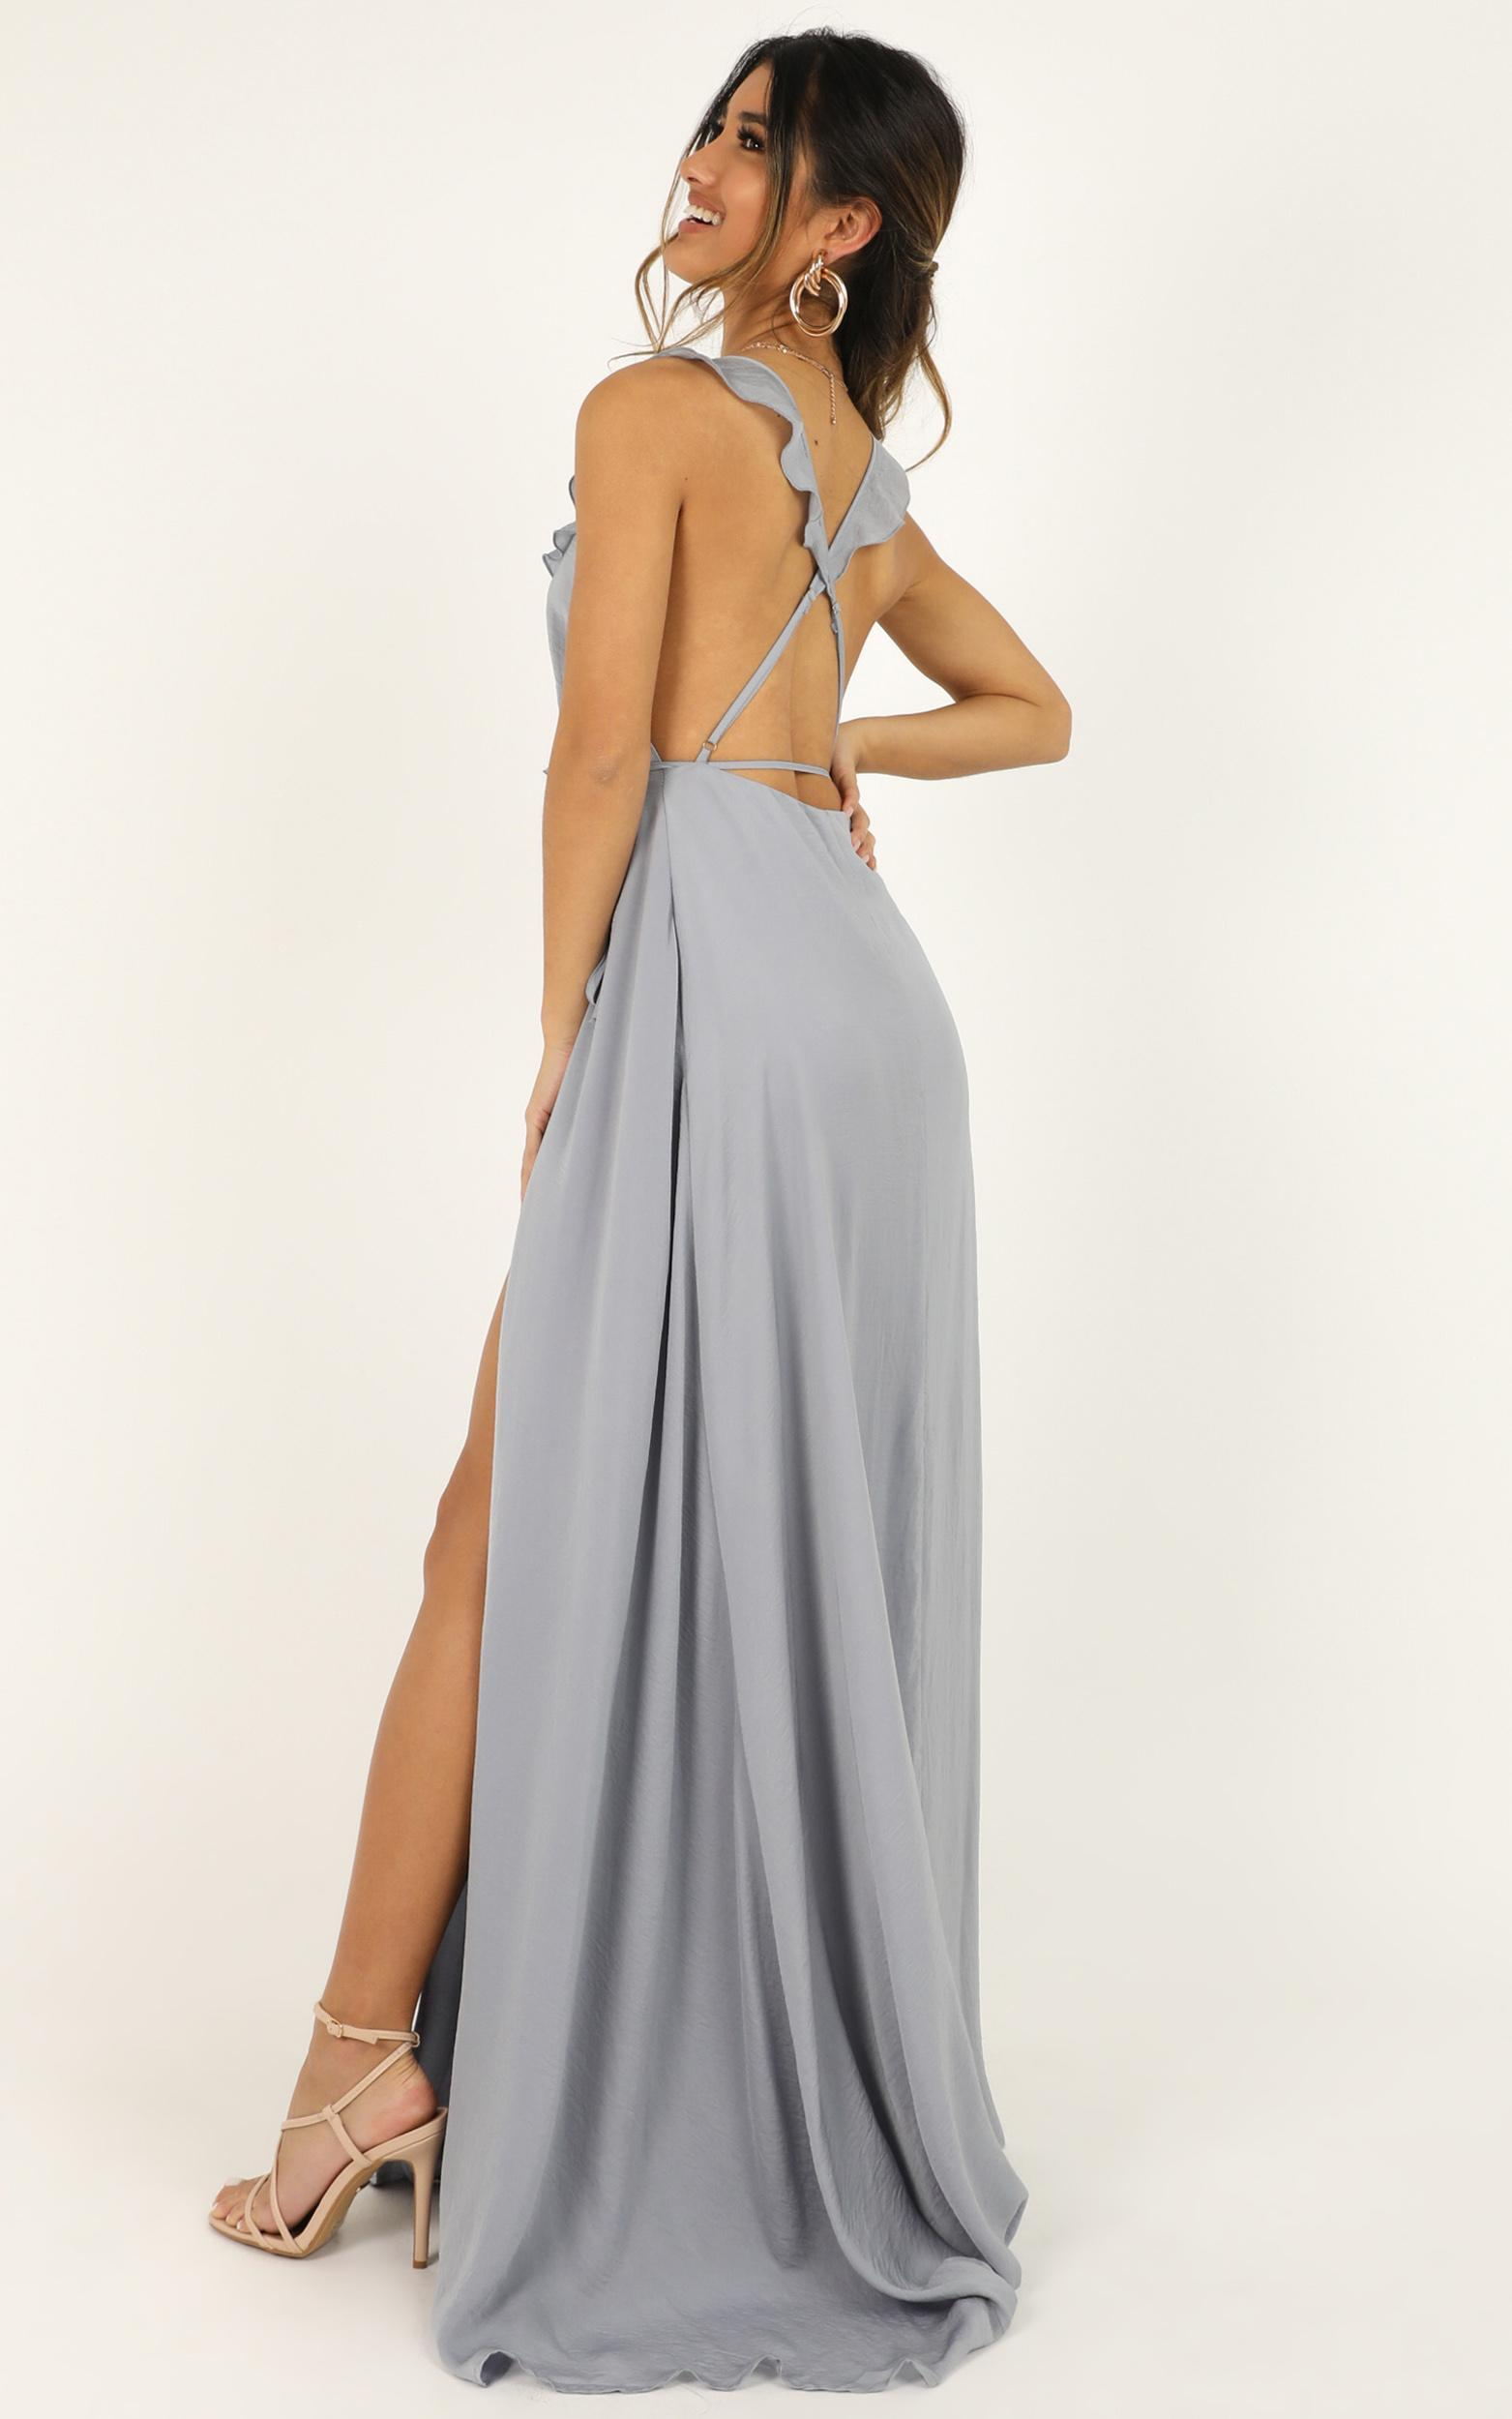 Losing My Edge Dress in dove blue satin - 20 (XXXXL), Blue, hi-res image number null